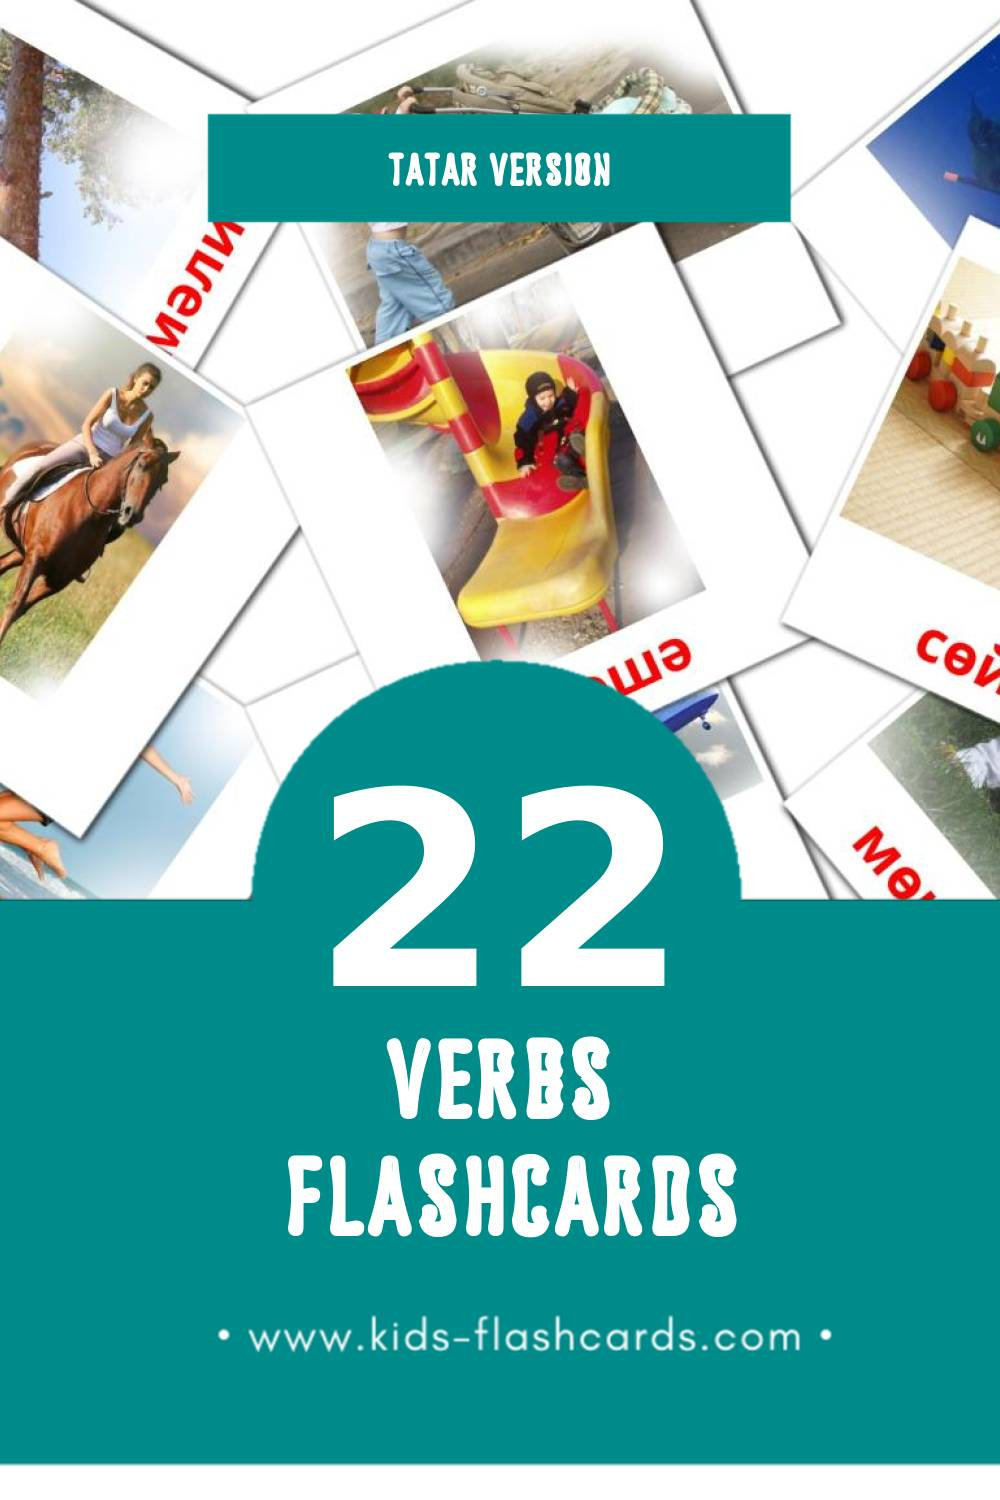 Visual Фигыльләр Flashcards for Toddlers (22 cards in Tatar)